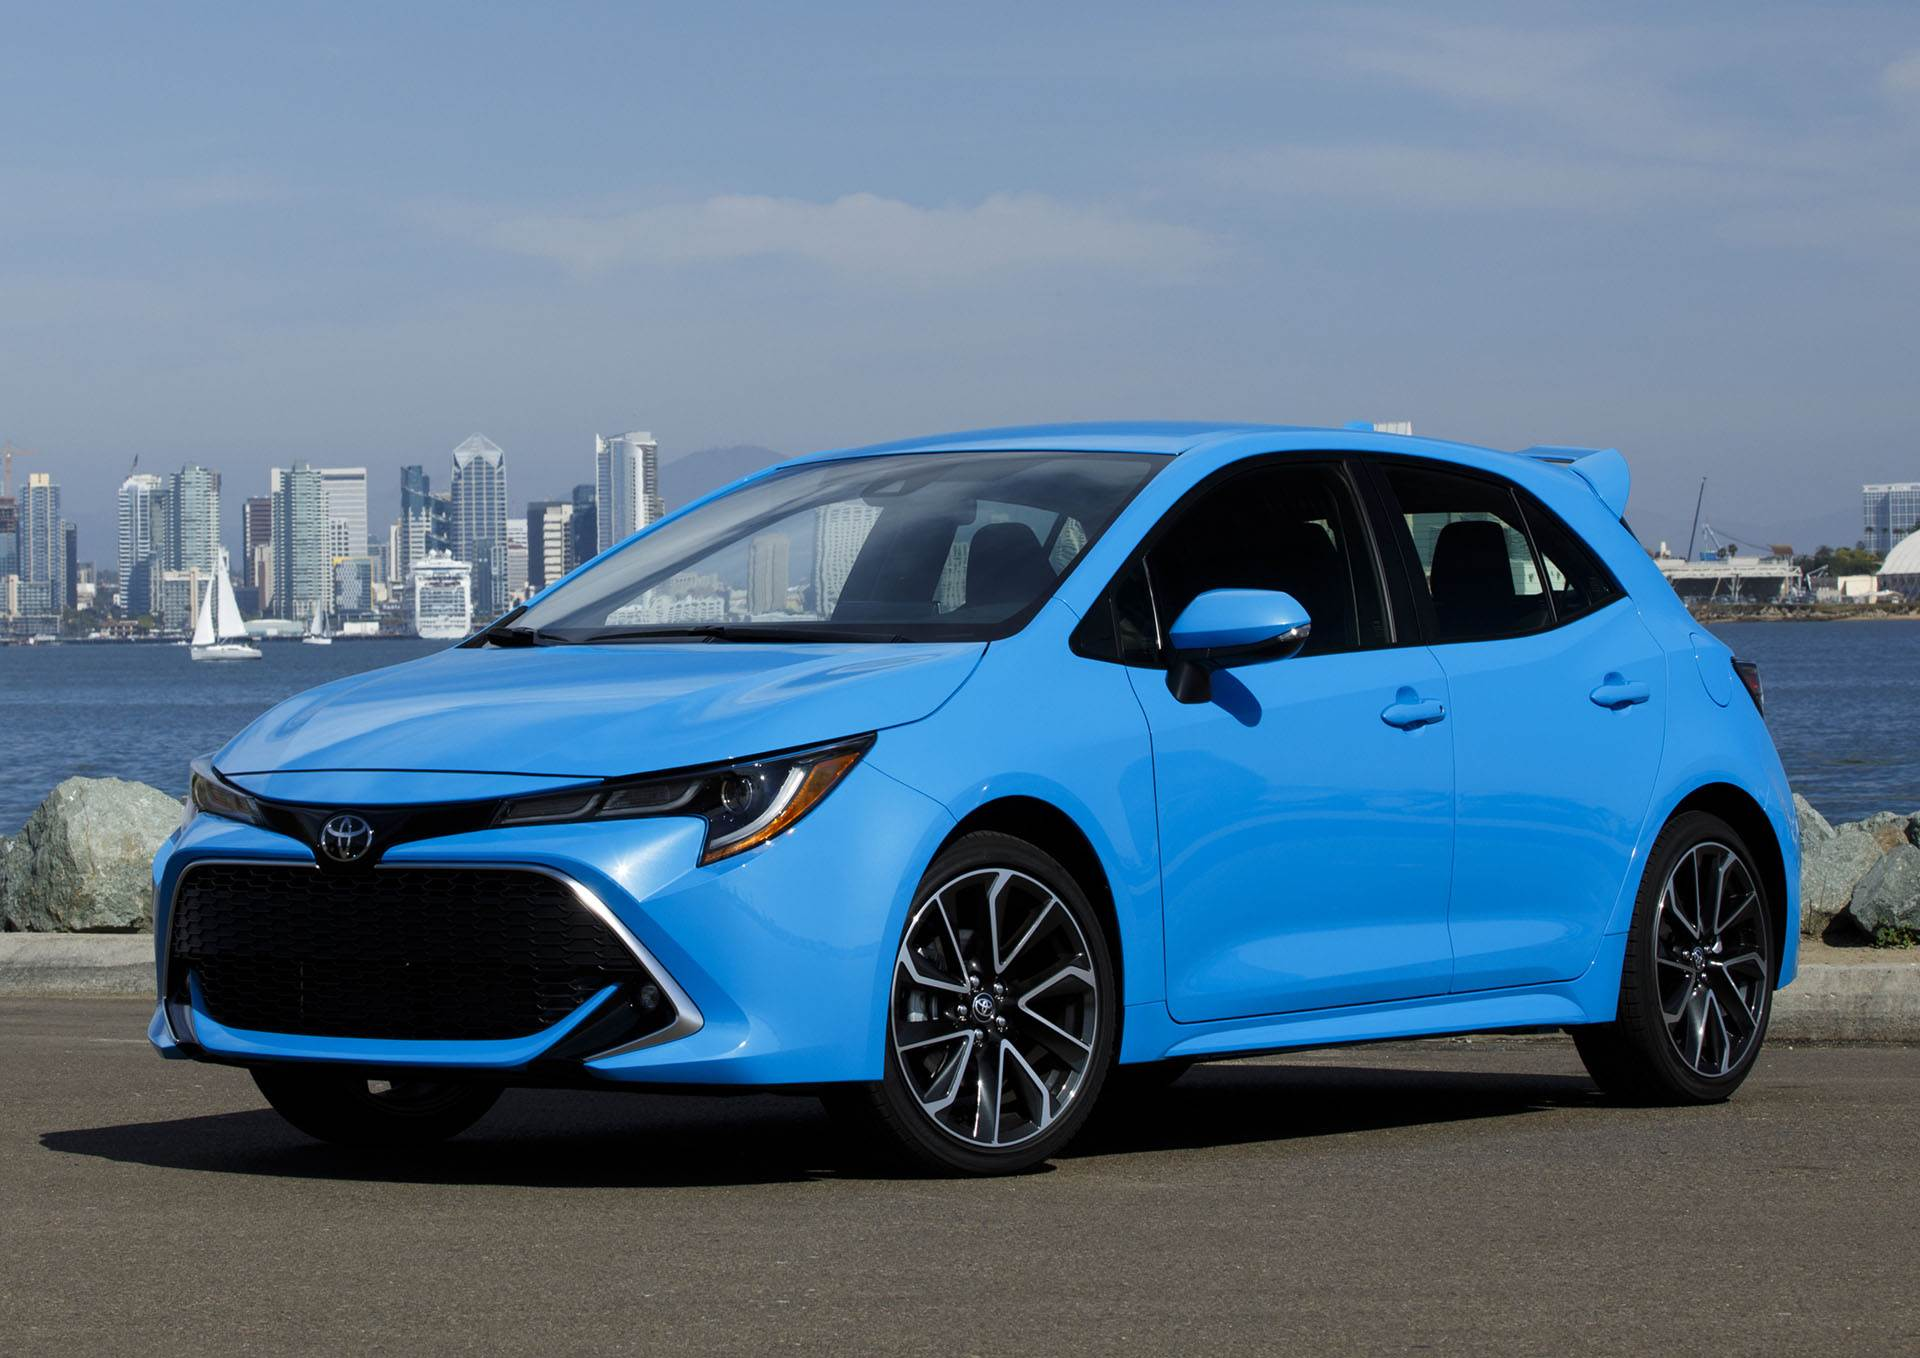 New Toyota Corolla sedan to be unveiled in November